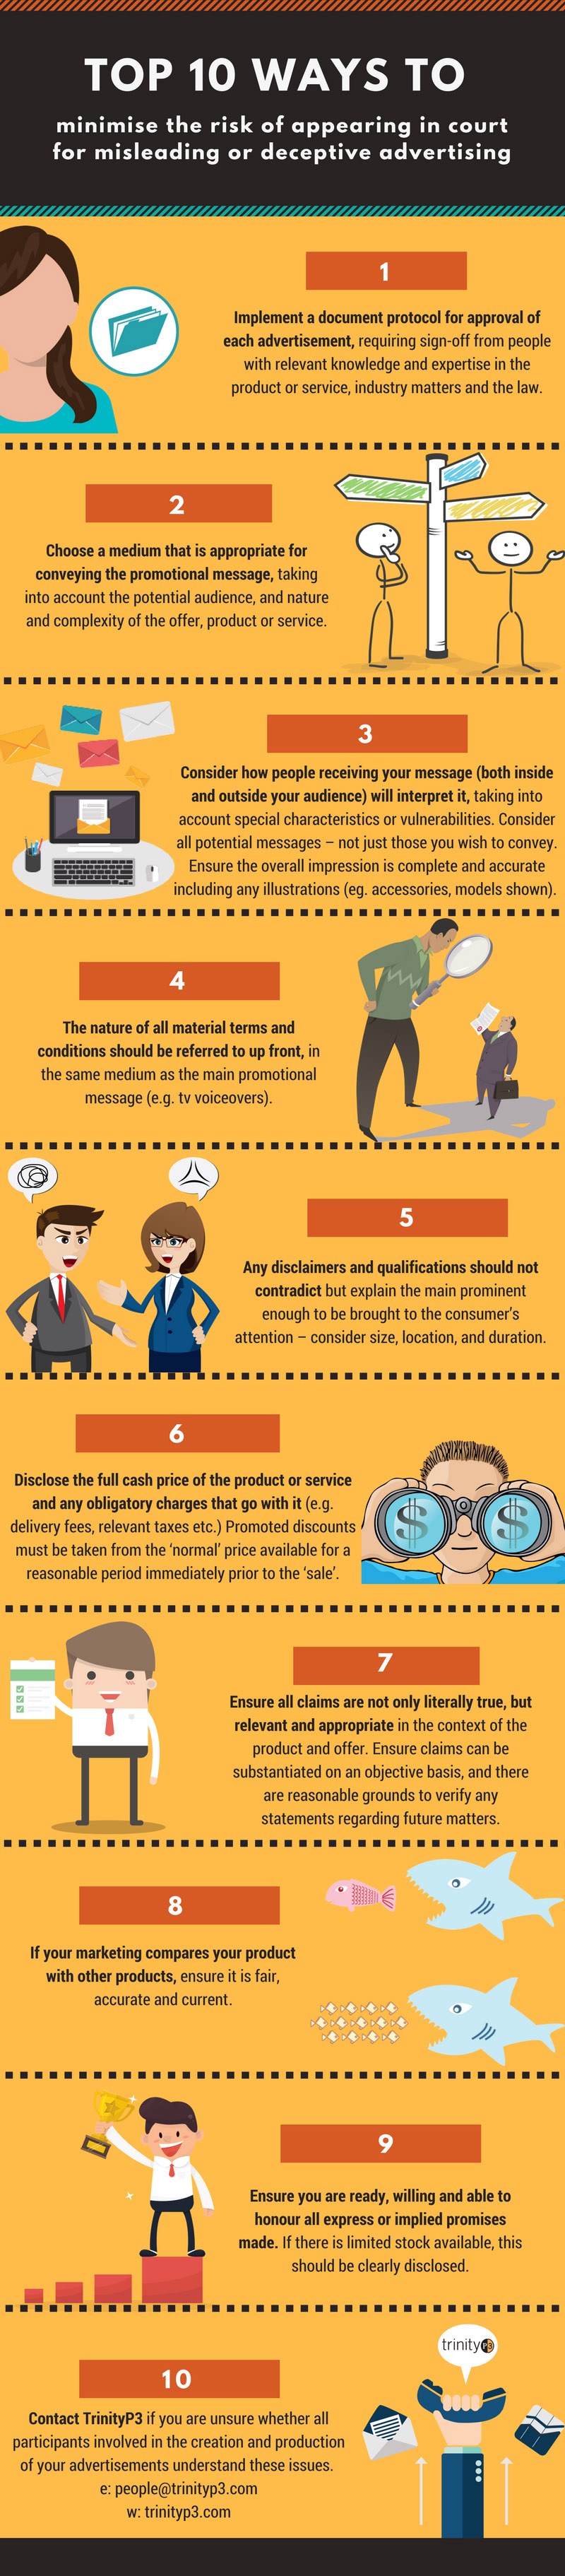 Top 10 ways to minimise the risk of appearing in court for misleading or deceptive advertising